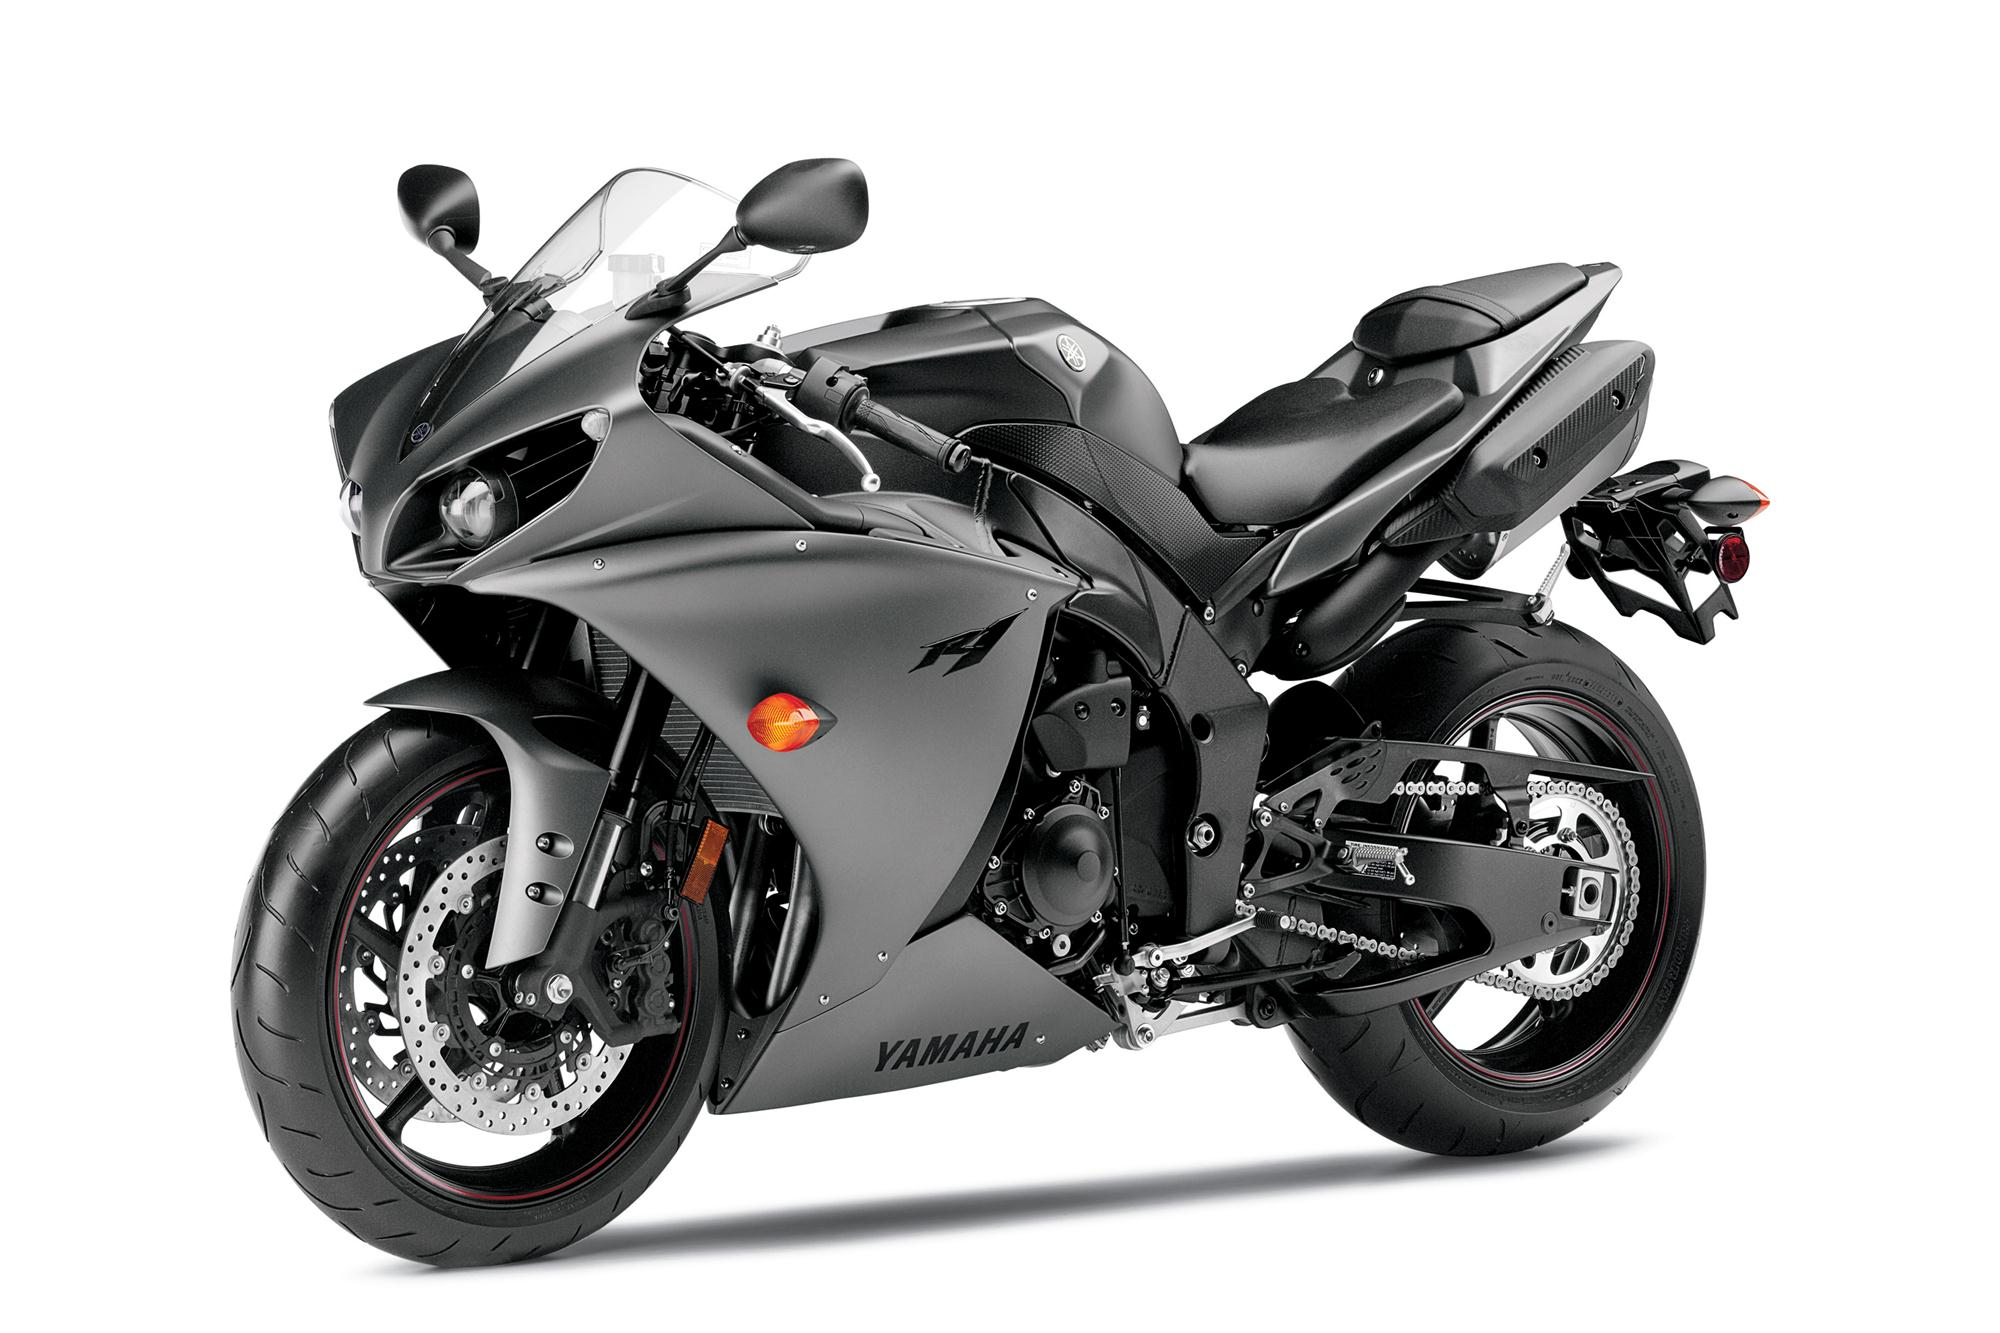 yamaha yzf r1 specs 2012 2013 2014 2015 2016 2017 2018 autoevolution. Black Bedroom Furniture Sets. Home Design Ideas